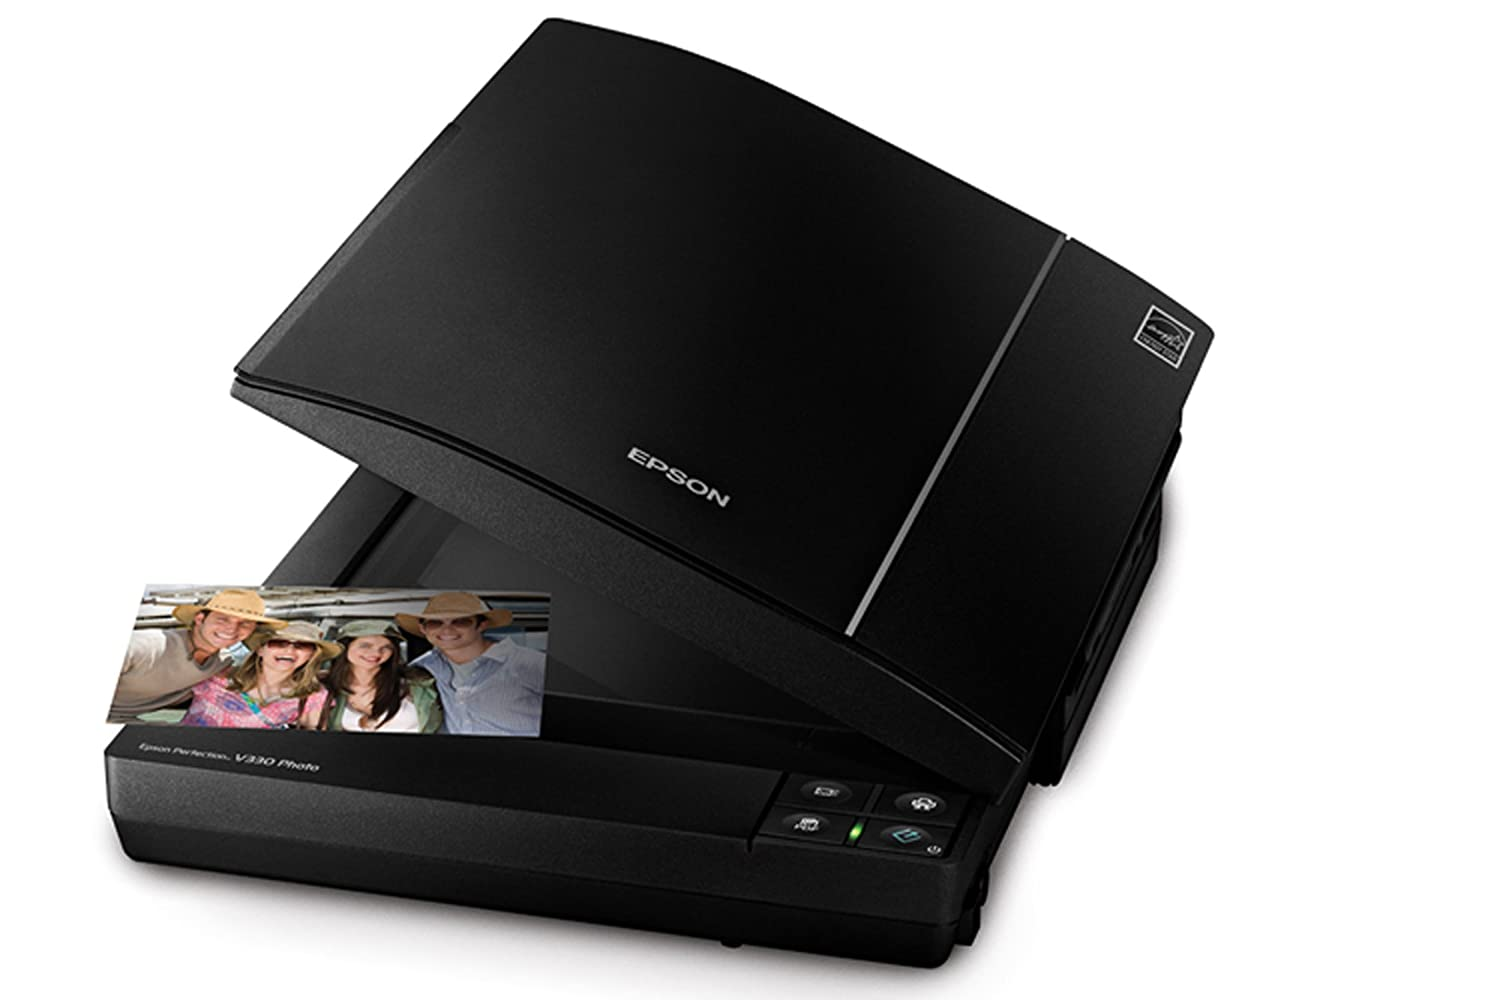 EPSON PERFECTION V330 PHOTO SCANNER DRIVERS WINDOWS 7